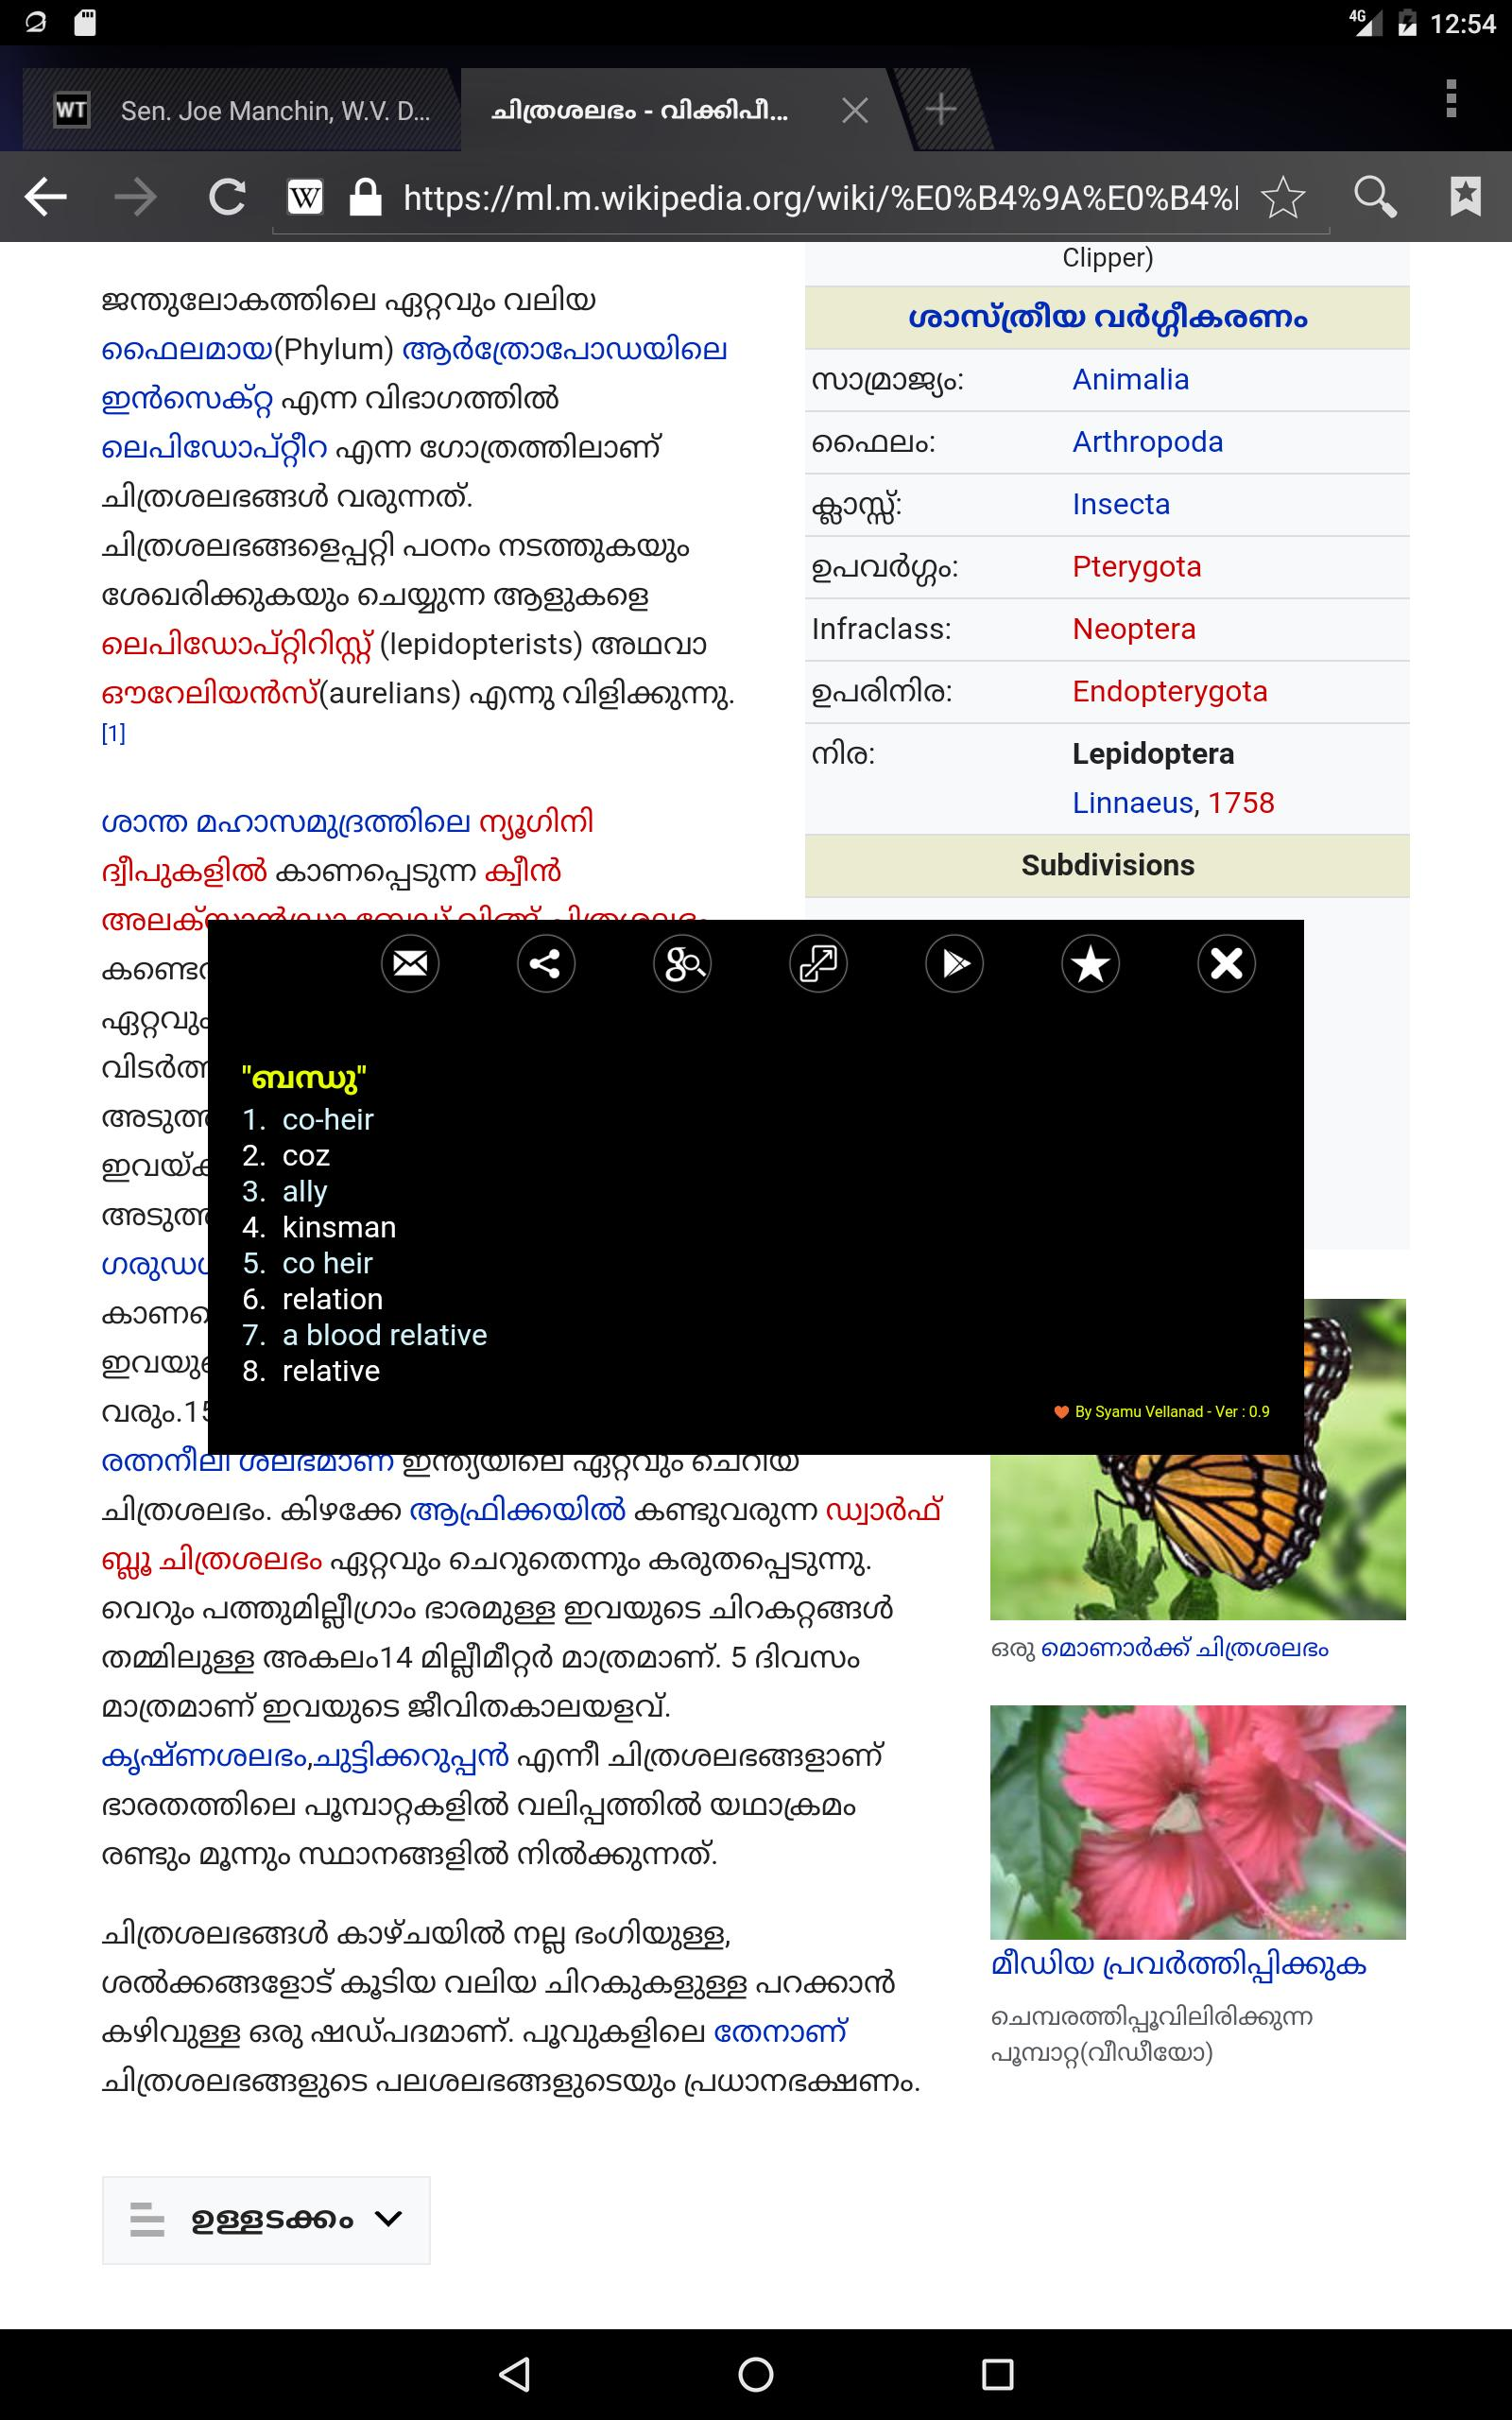 Malayalam Dictionary Pro for Android - APK Download